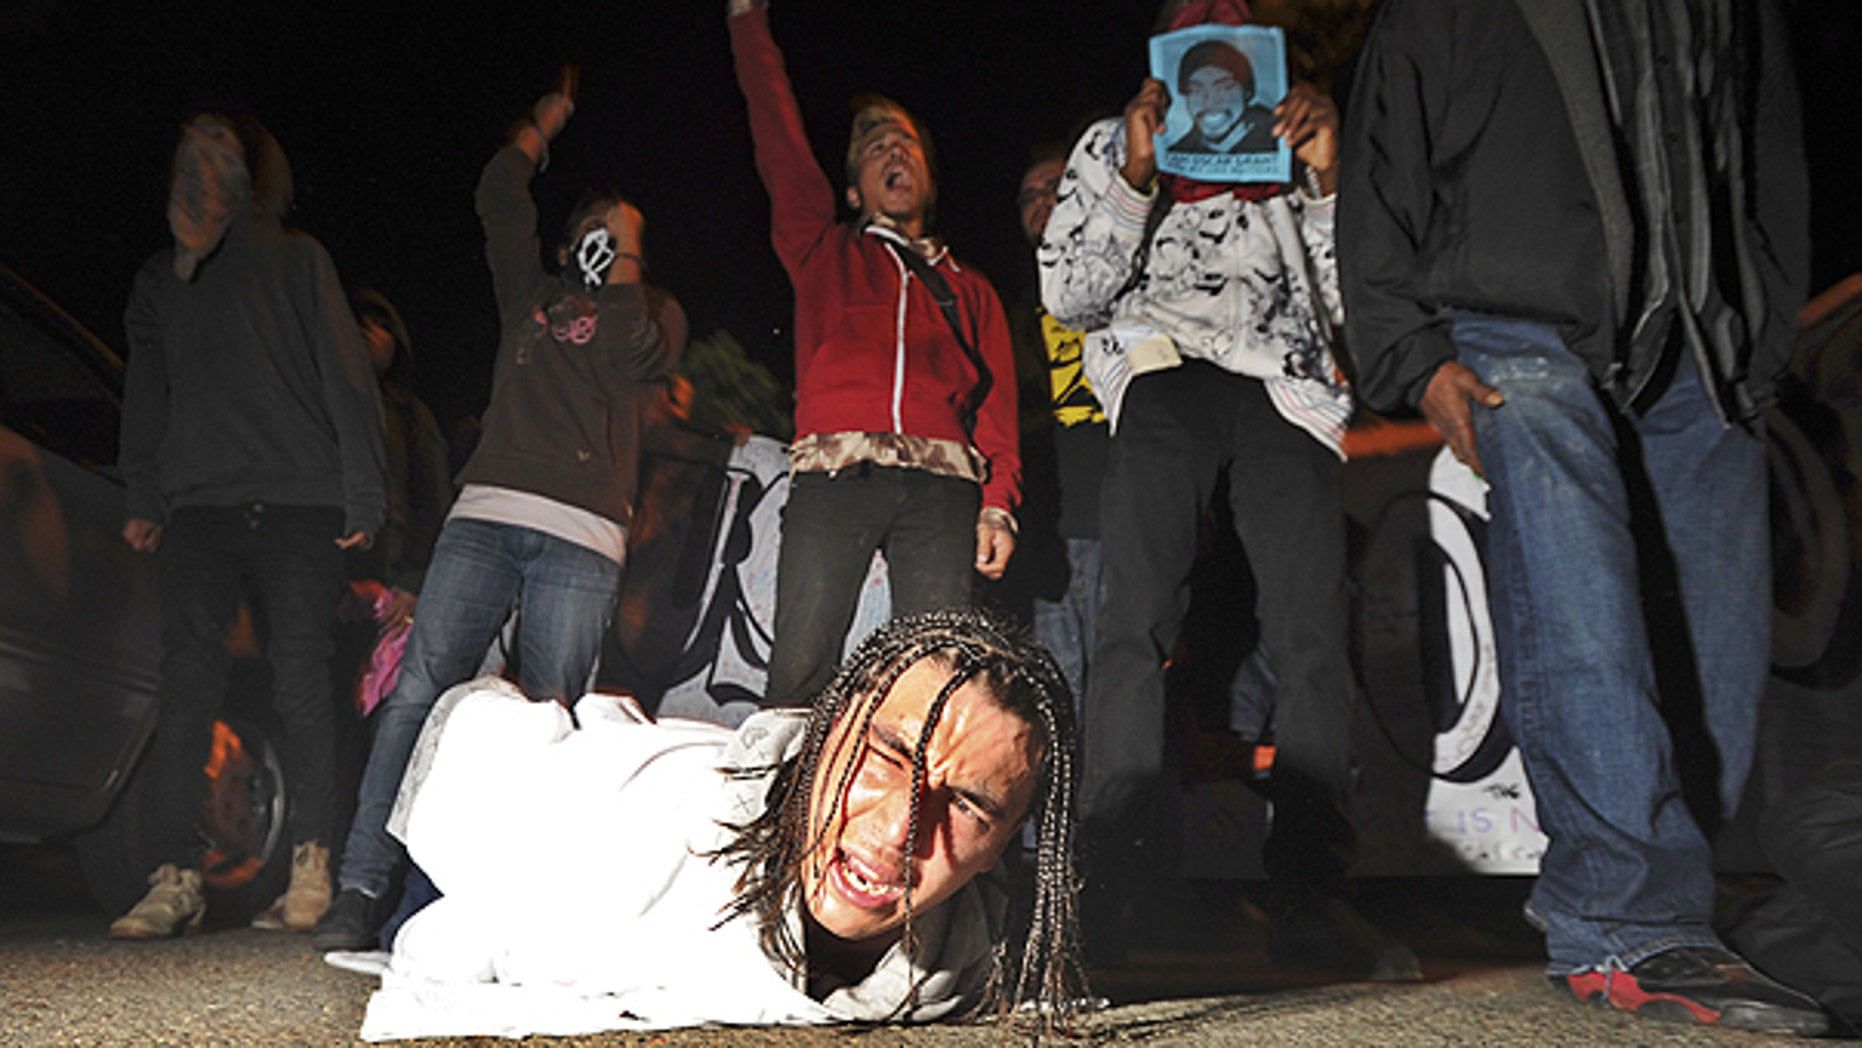 Nov. 5: A demonstrator lies on the ground during a protest after the sentencing of ormer Bay Area Rapid Transit police officer Johannes Mehserle.